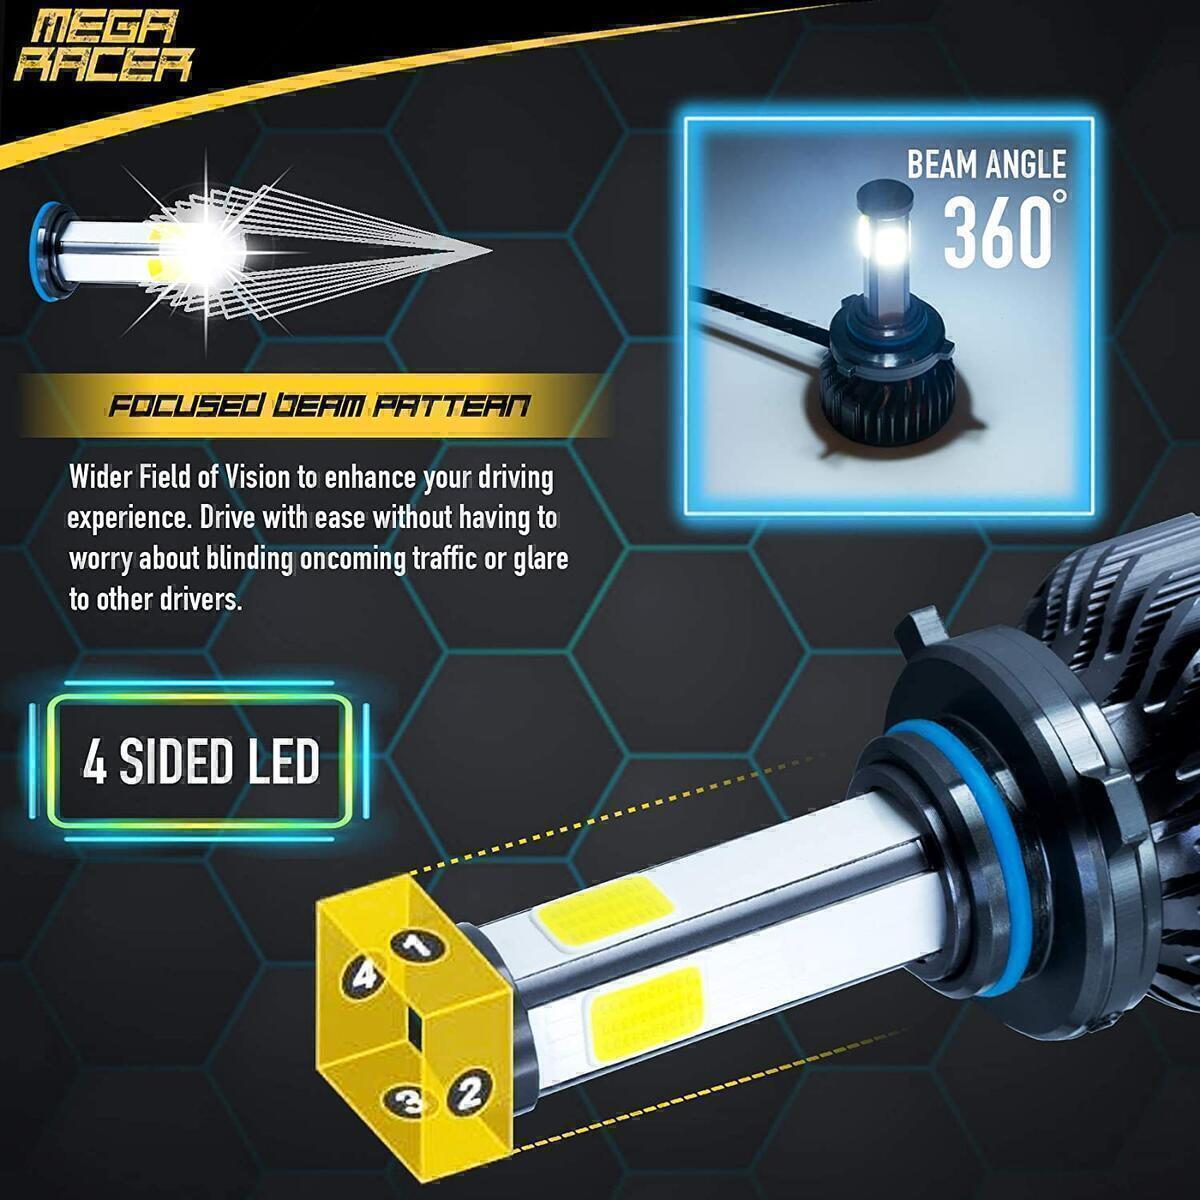 Mega Racer 4 Sided 9006/HB4 LED Headlight Bulbs for Low Beam Fog Light 60W 6000K 10000 Lumens Super Bright White COB IP68 Waterproof, Pack of 2